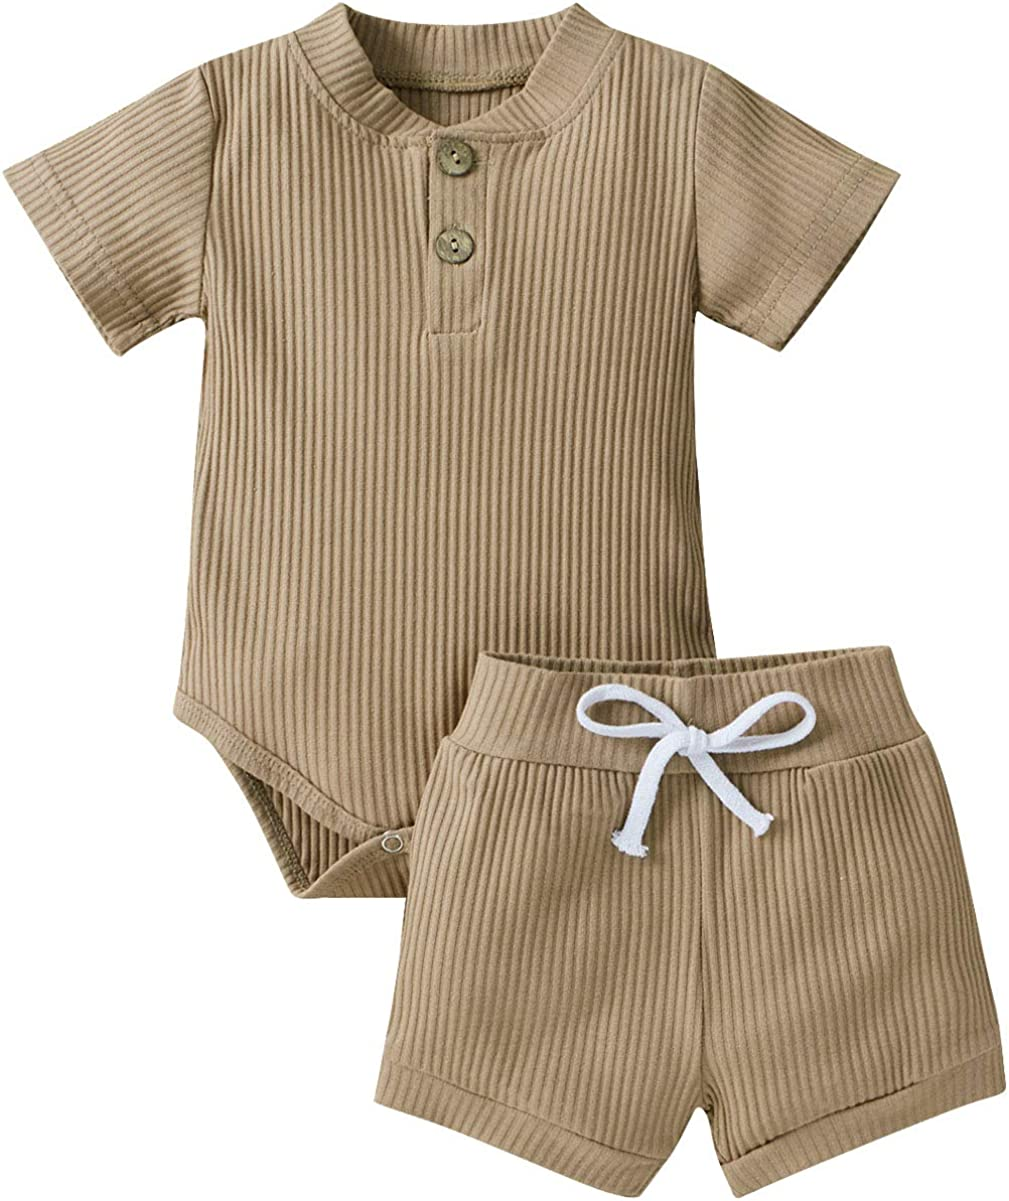 HZYKOK Unisex Baby Clothes Pajamas Toddler Pants Shorts Set Boy Girl 2Pcs Outfit Solid